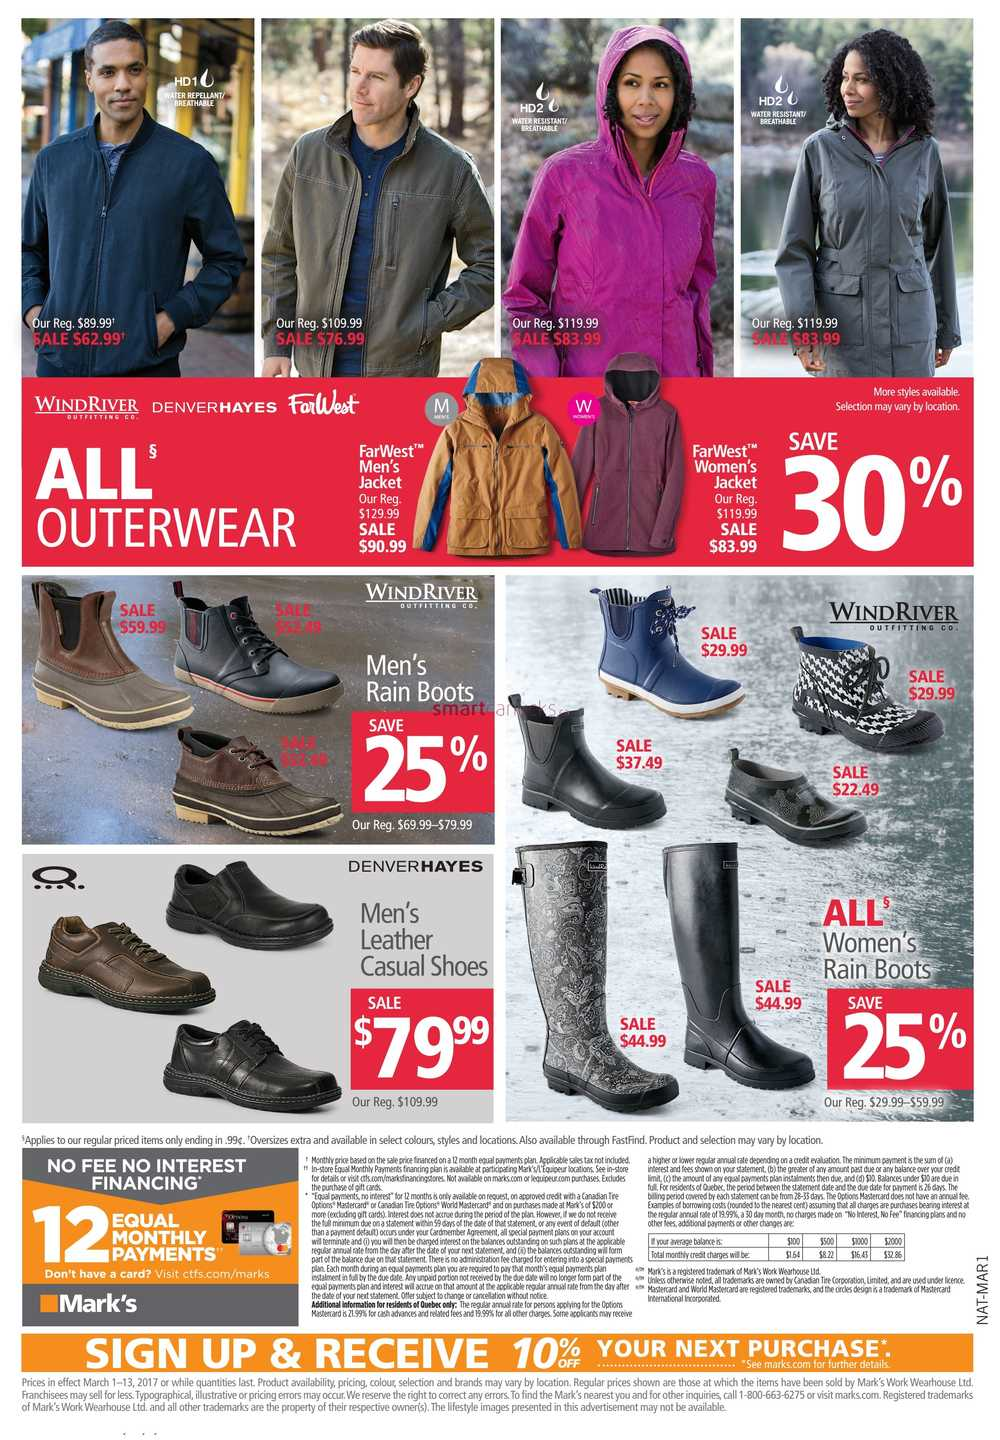 Get the latest Sport Chek coupon codes & promo codes now. Save on clothing, runners, outewear and all your sport needs with 7 Sport Chek discount codes for Canada in December